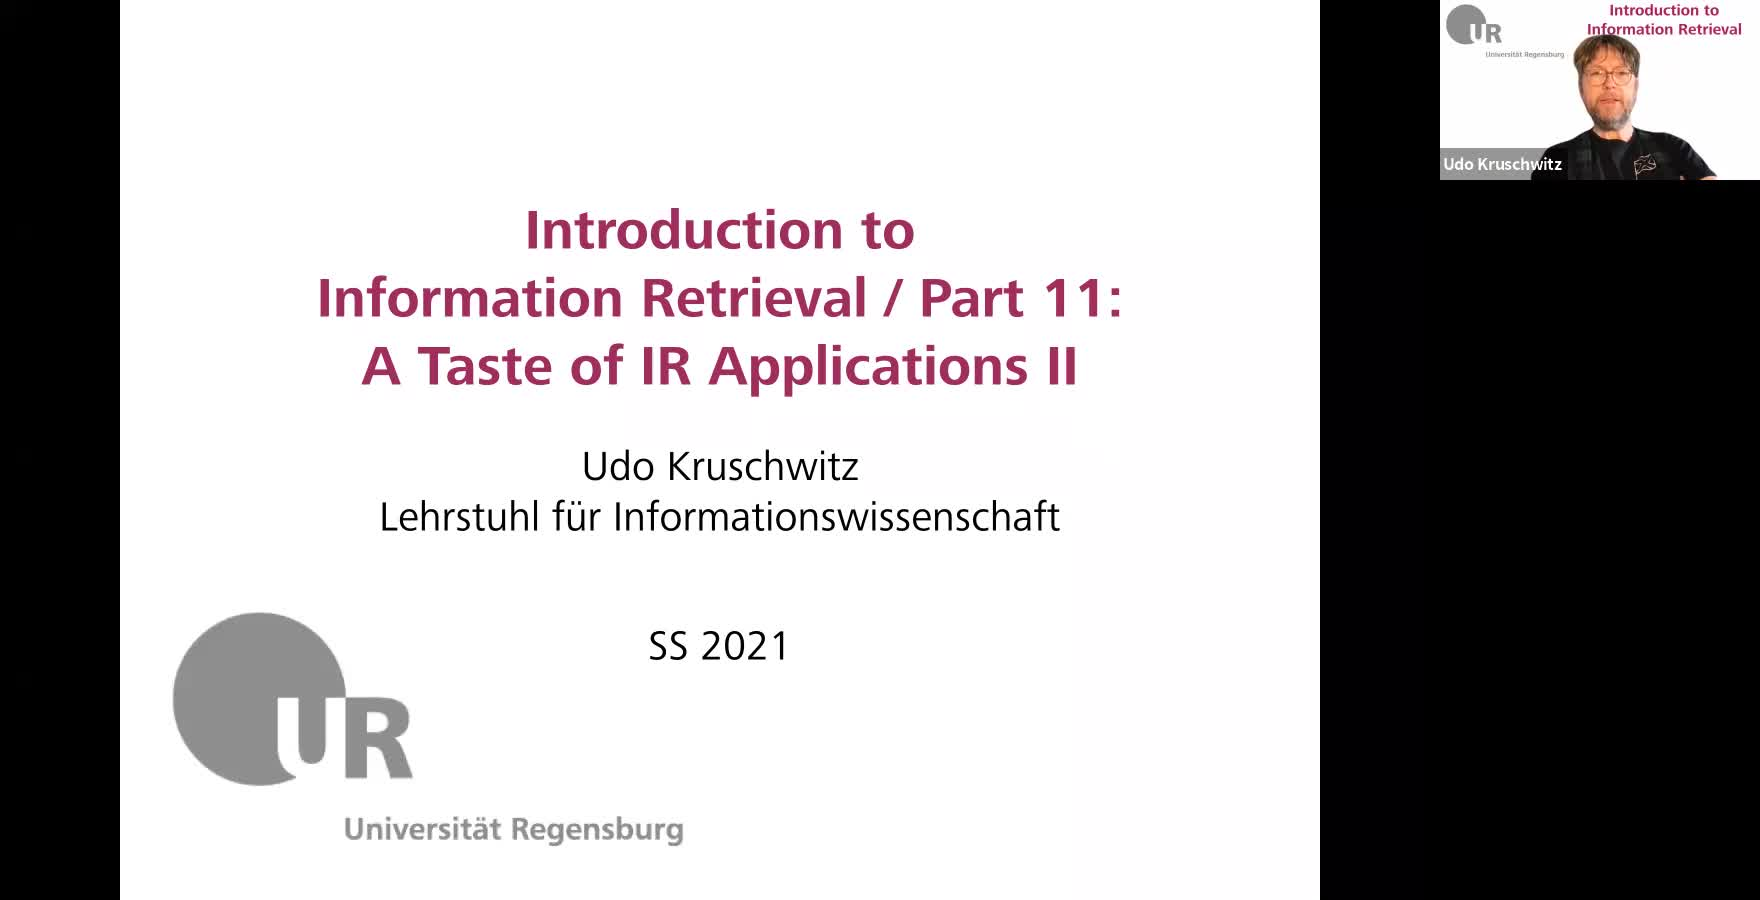 Introduction to Information Retrieval - Lecture 11 (A taste of IR applications II)